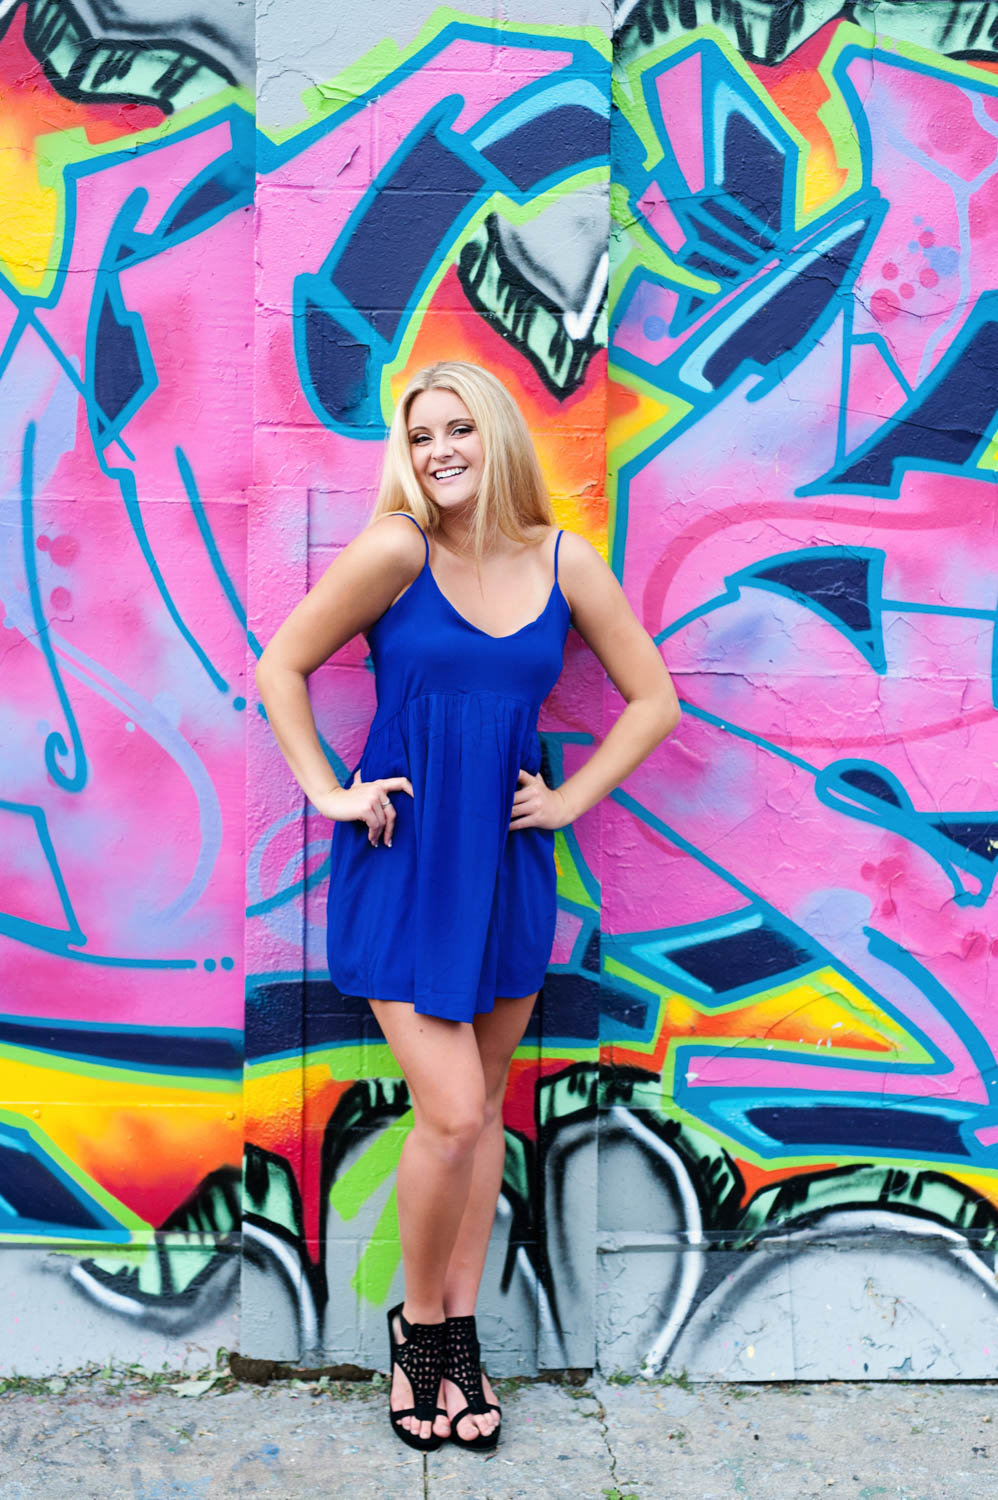 Senior picture of blonde girl in front of graffiti wall